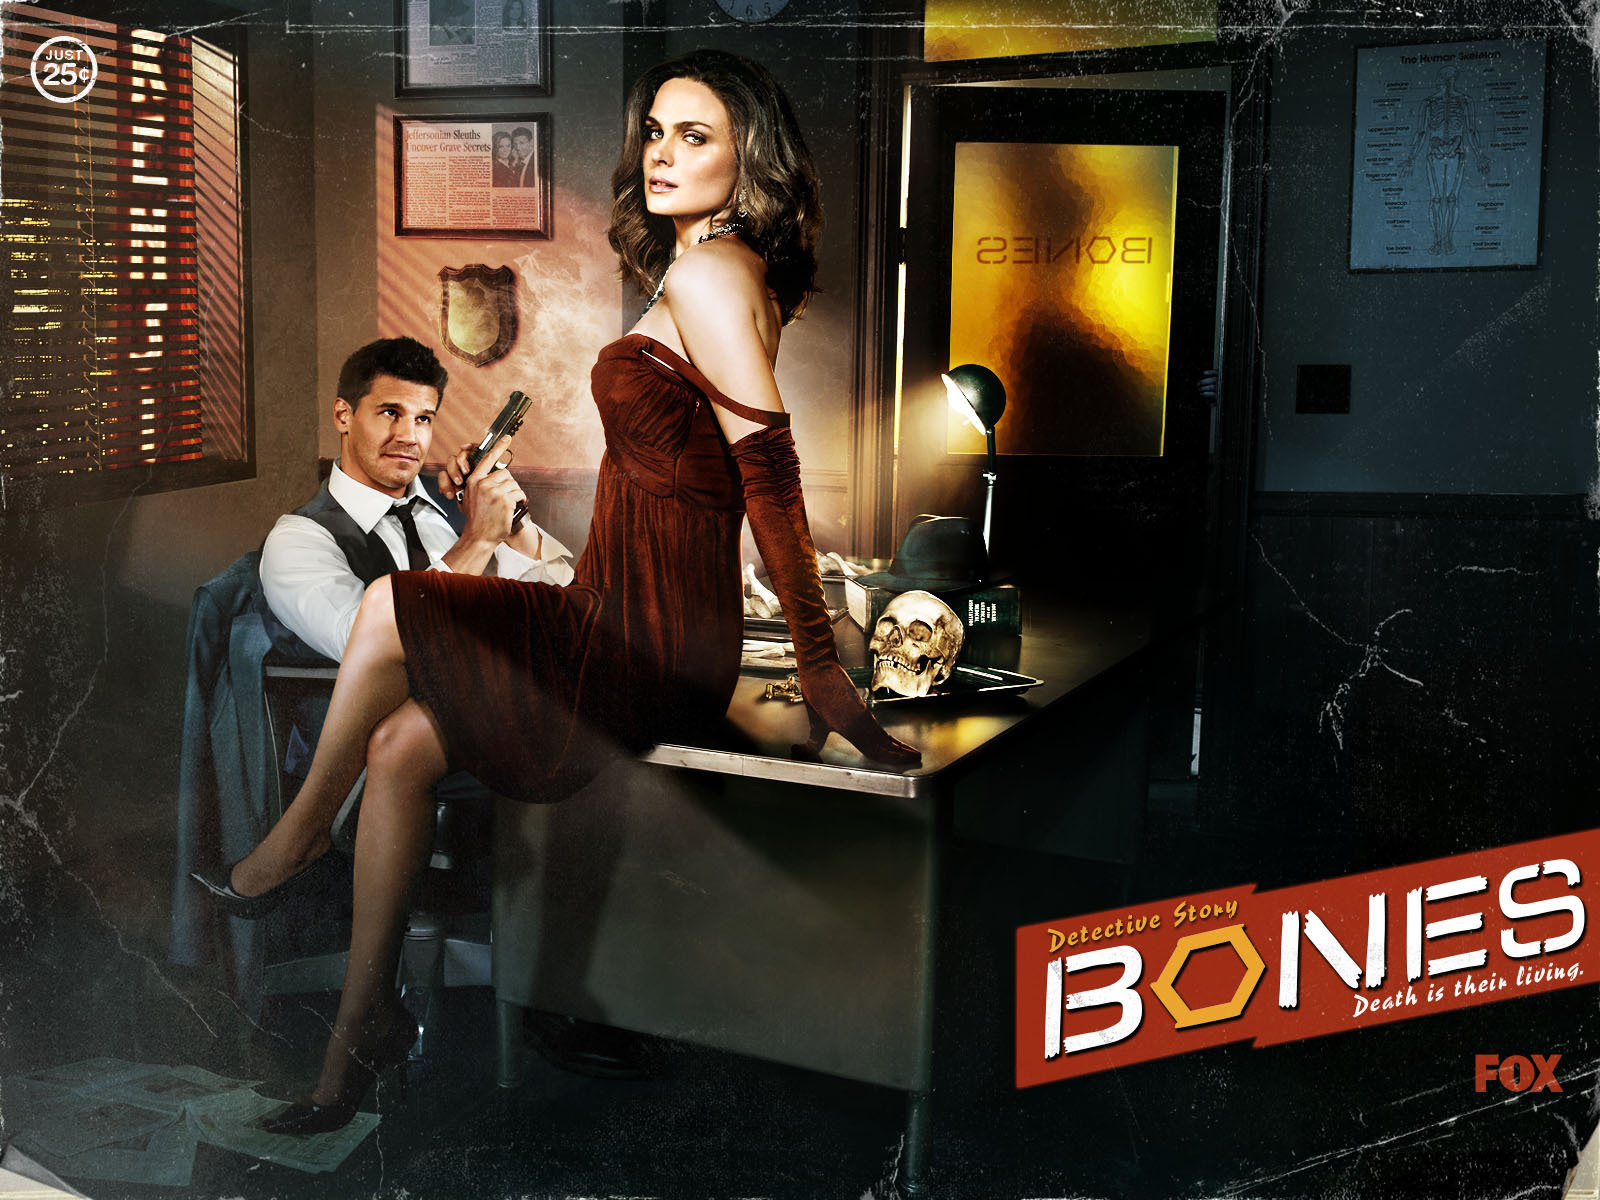 Booth-and-Brennan-Wallpapers-booth-and-bones-8488061-1600-1200.jpg (1600×1200)